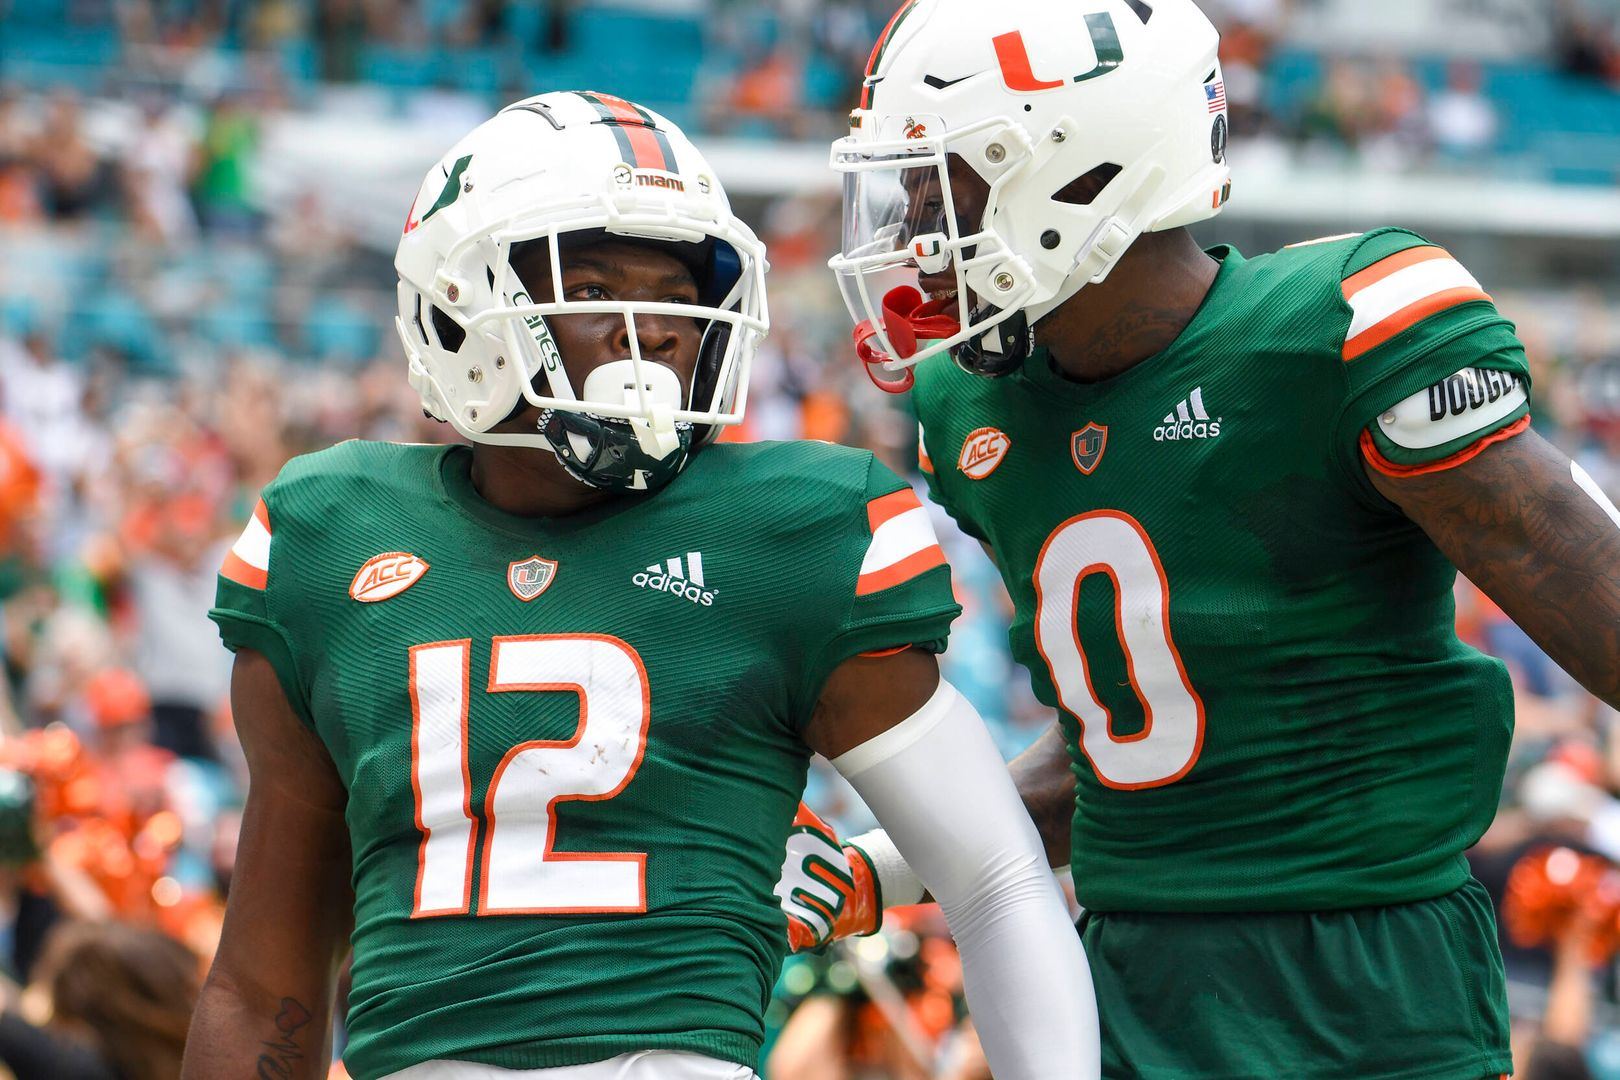 Takeaways from Miami's Win over Central Connecticut State